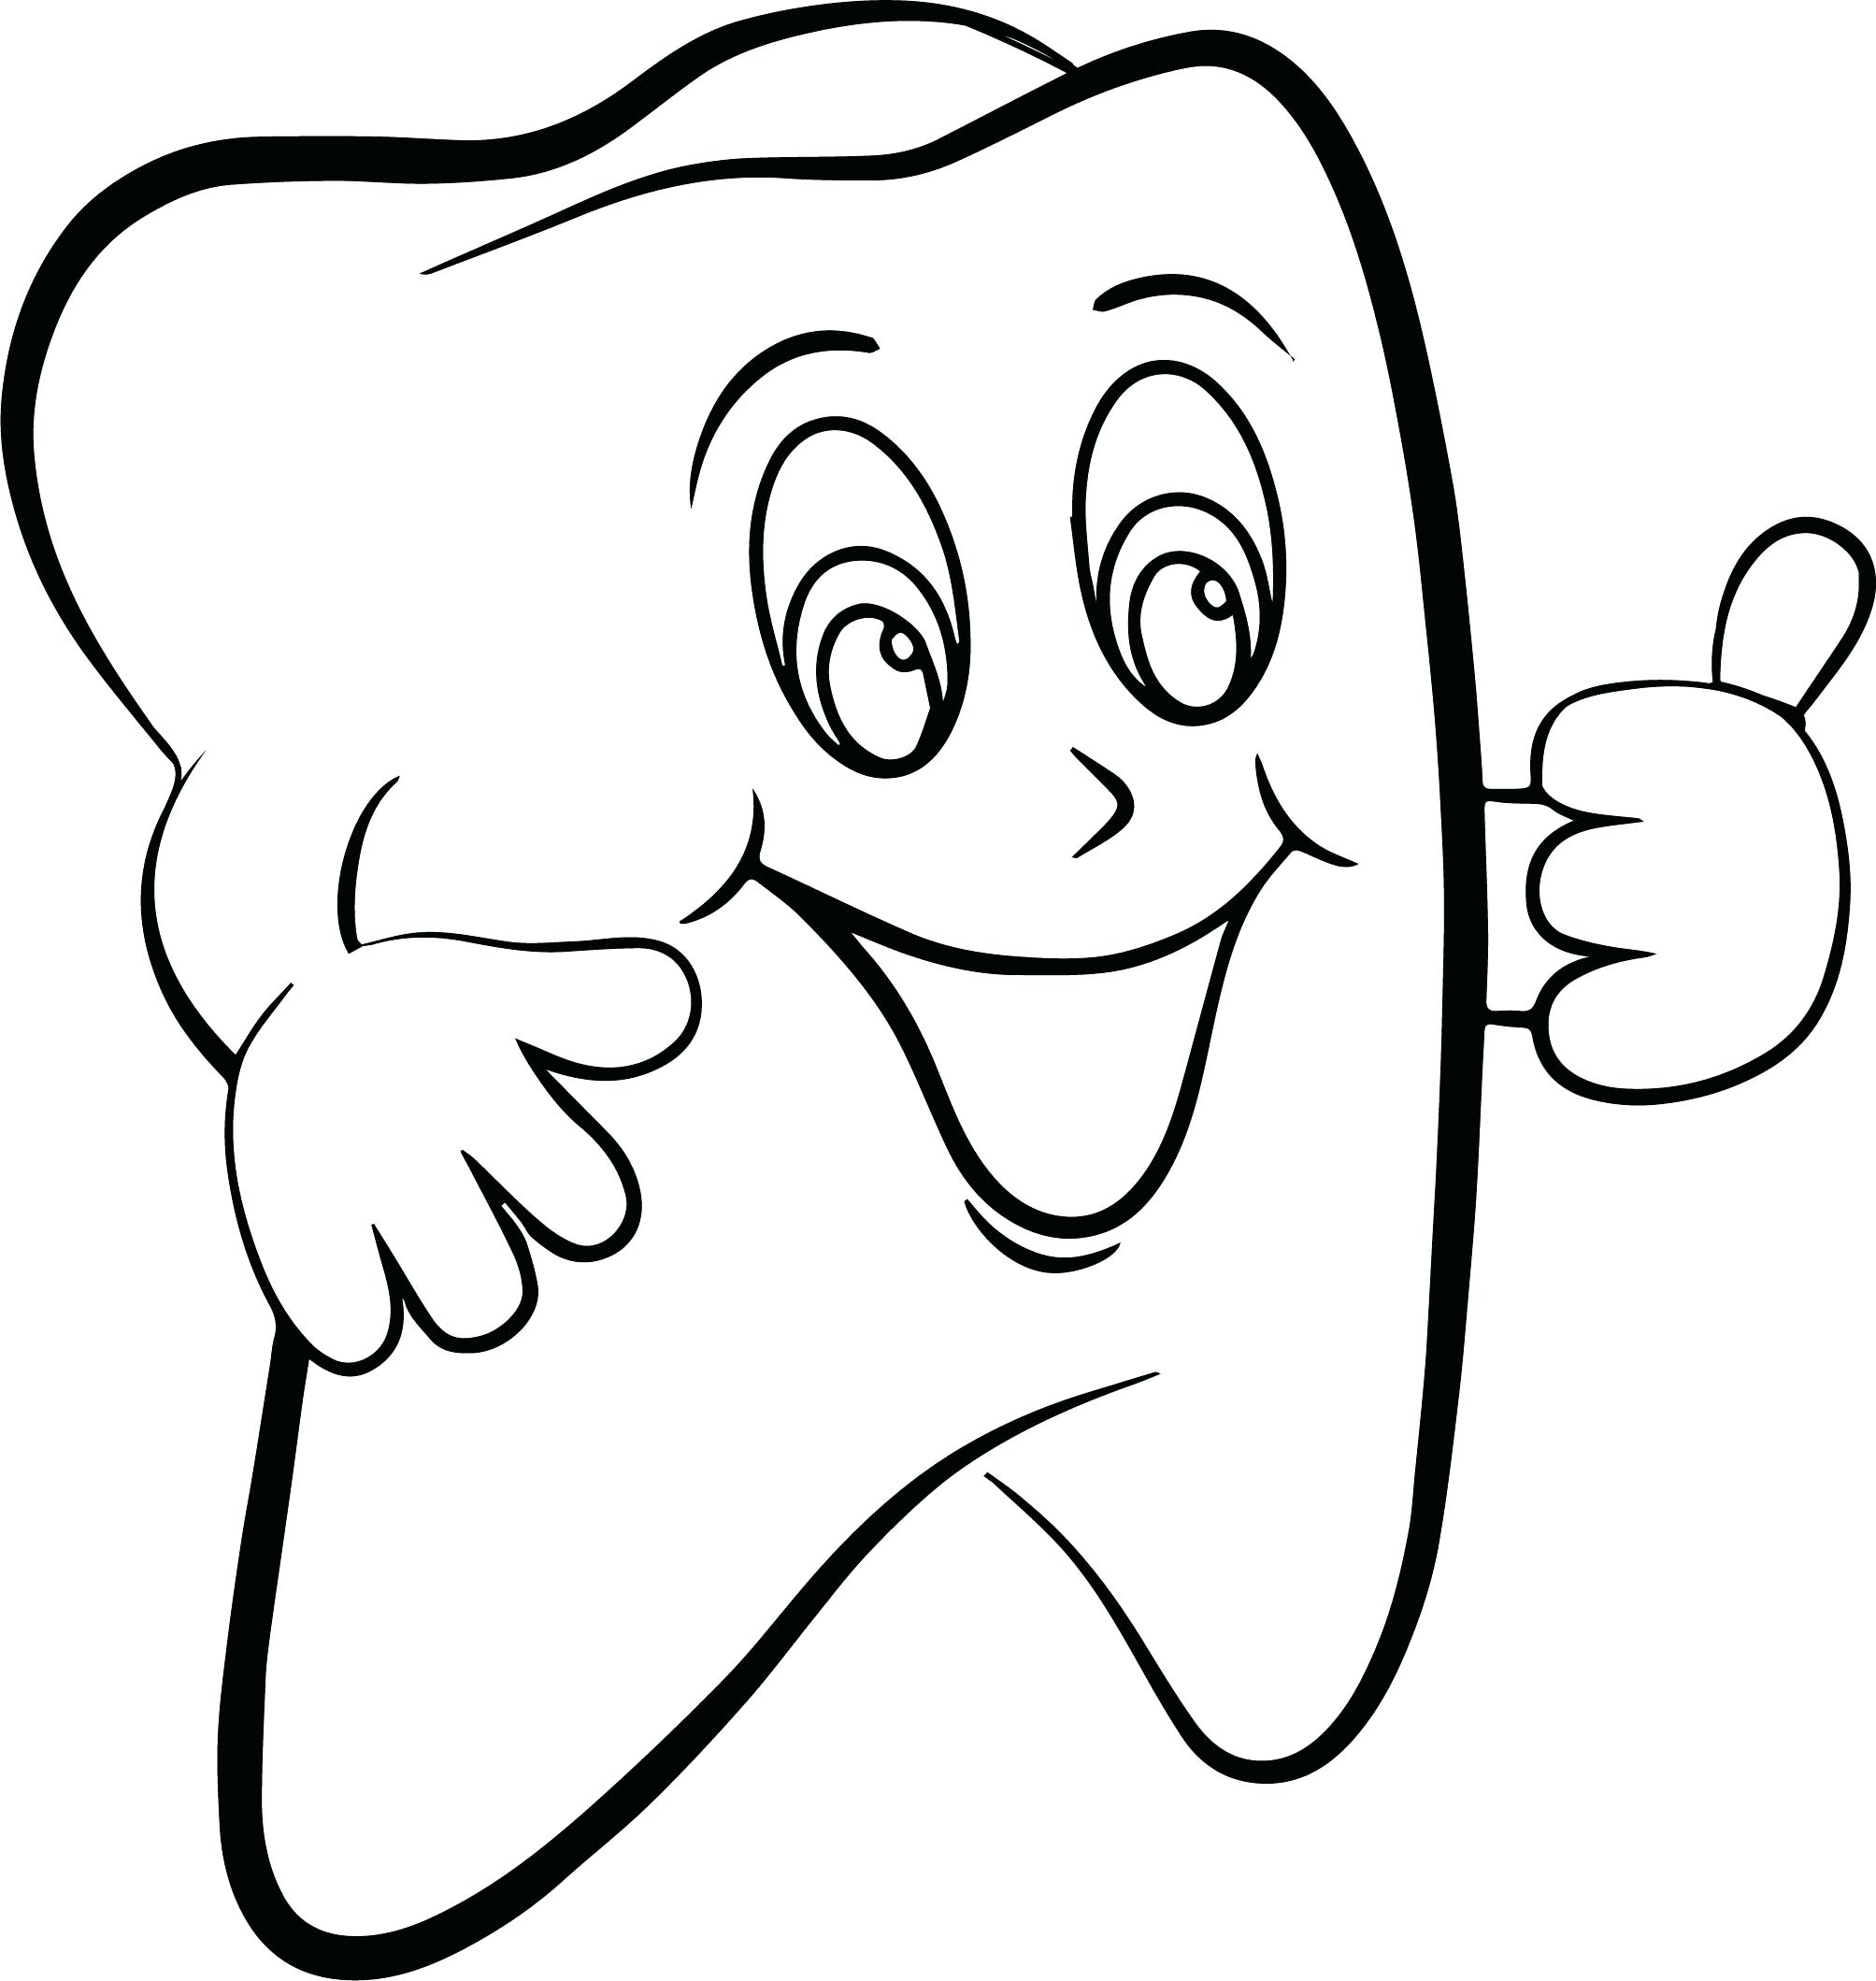 2007x2119 Coloring Pages Of Teeth Prixducommerce Printable Teeth